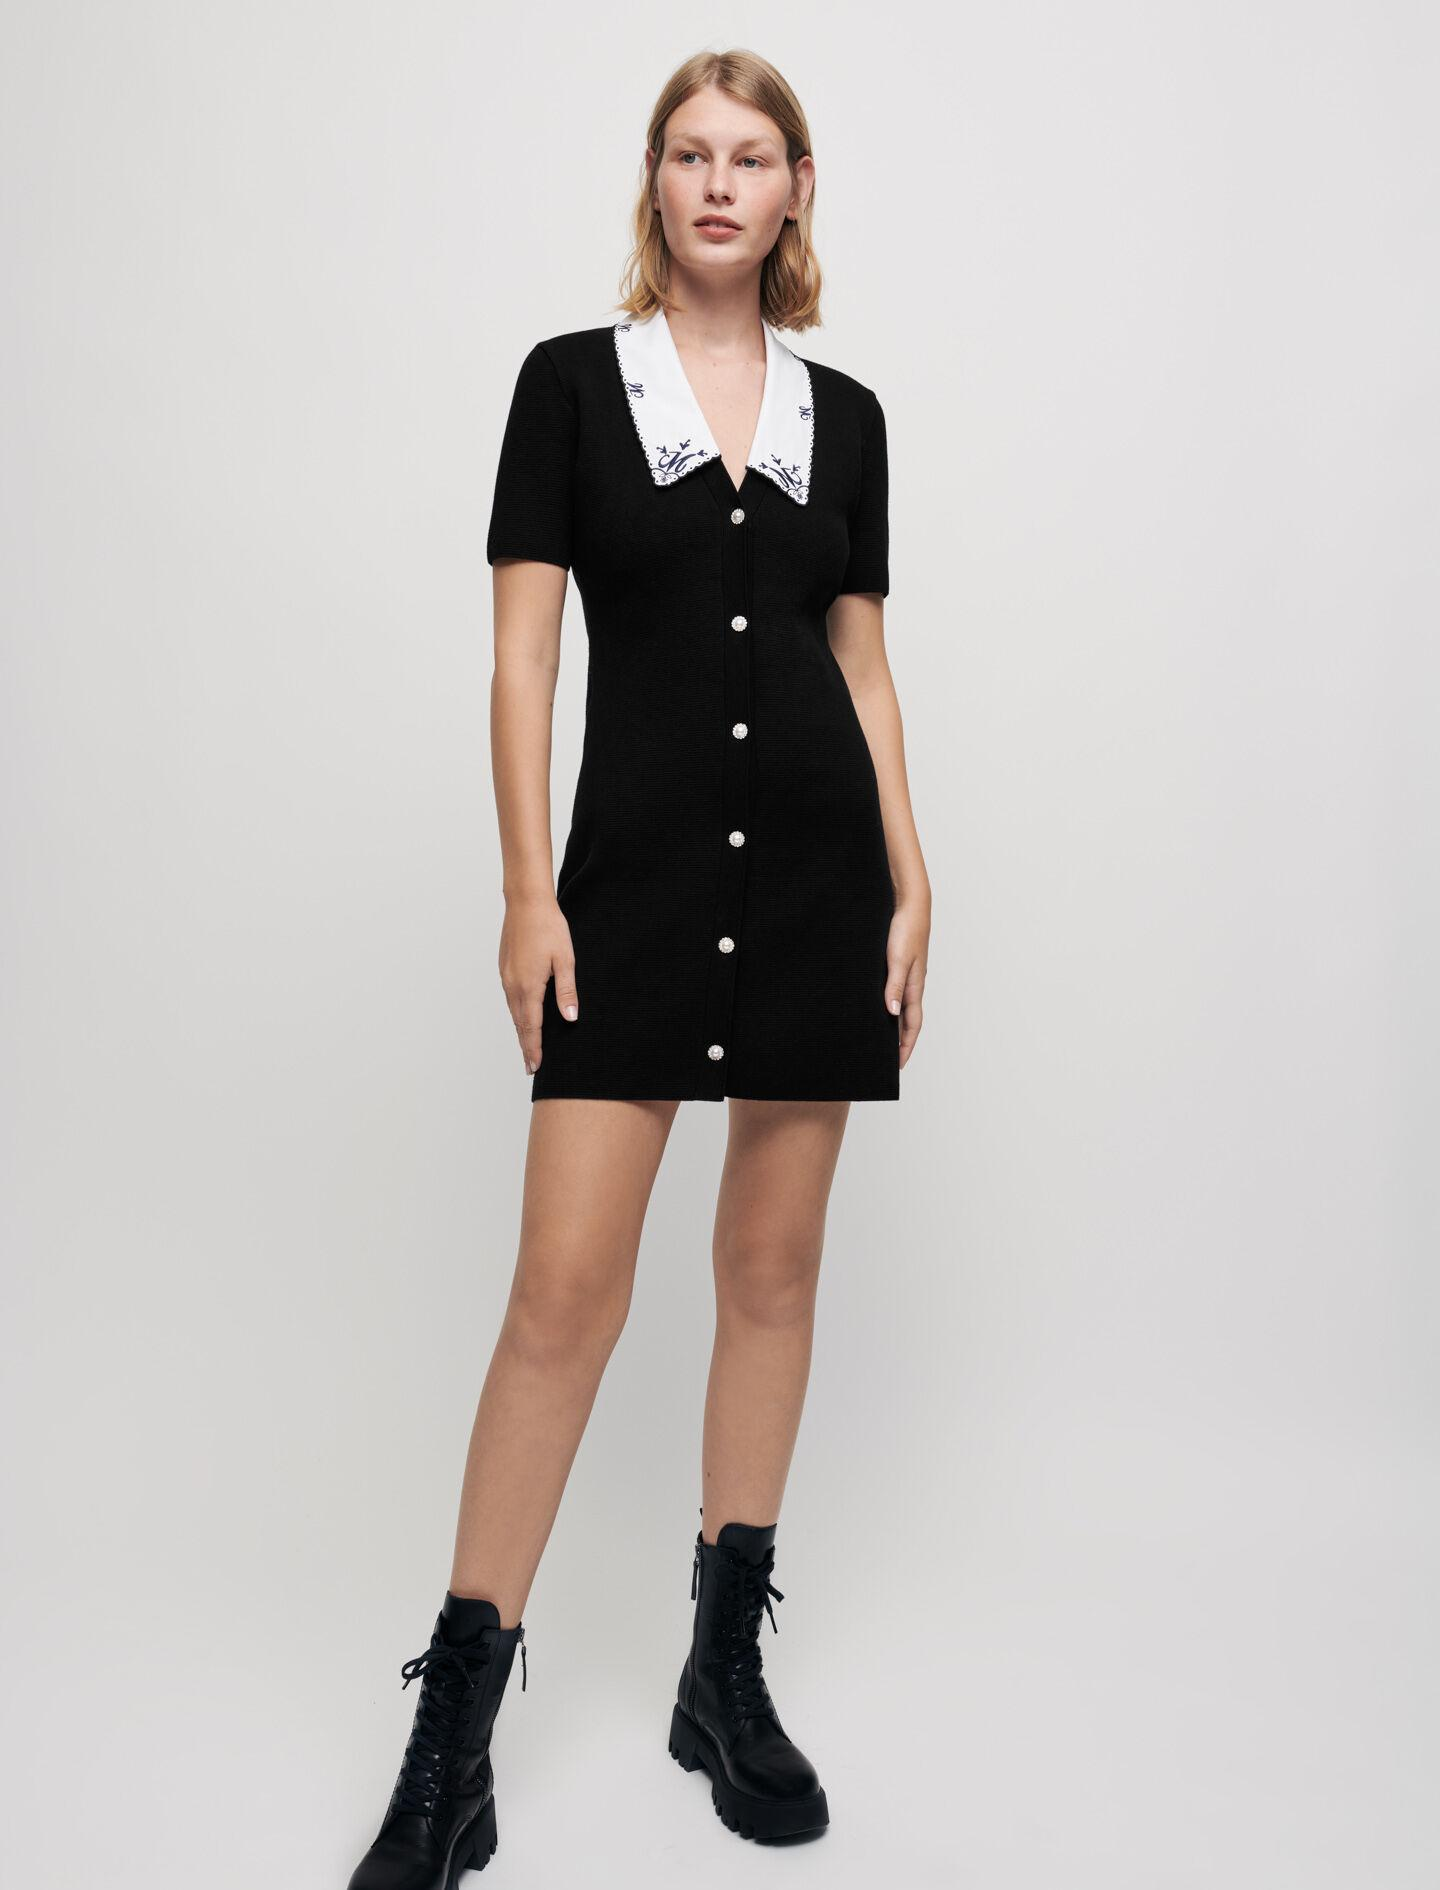 KNIT DRESS WITH EMBROIDERED COLLAR